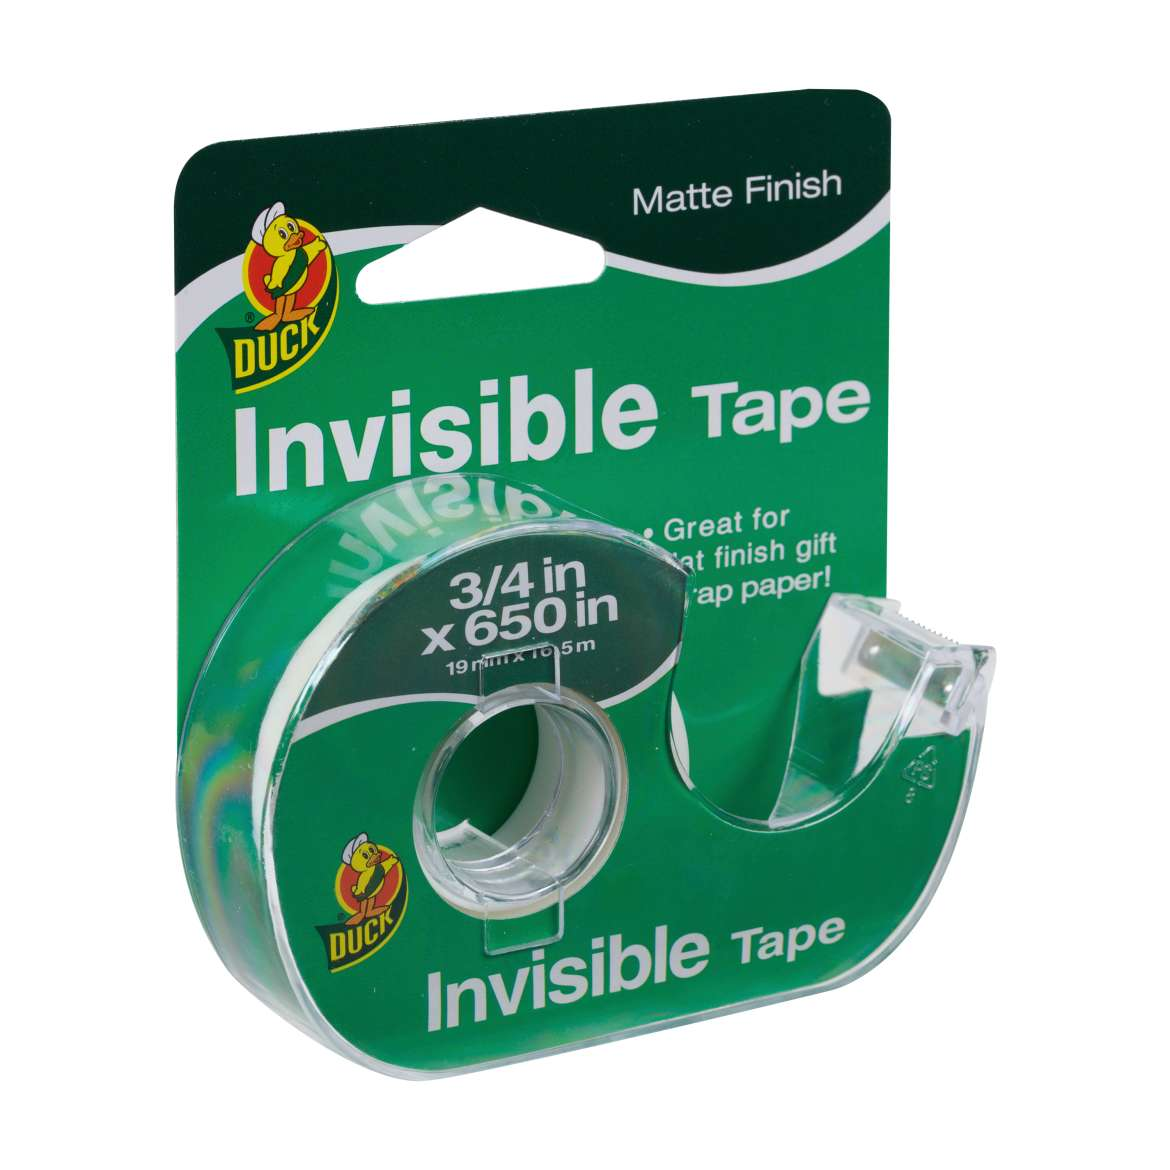 Duck® Brand Matte Finish Invisible Tape - Clear, .75 in. x 650 in. Image